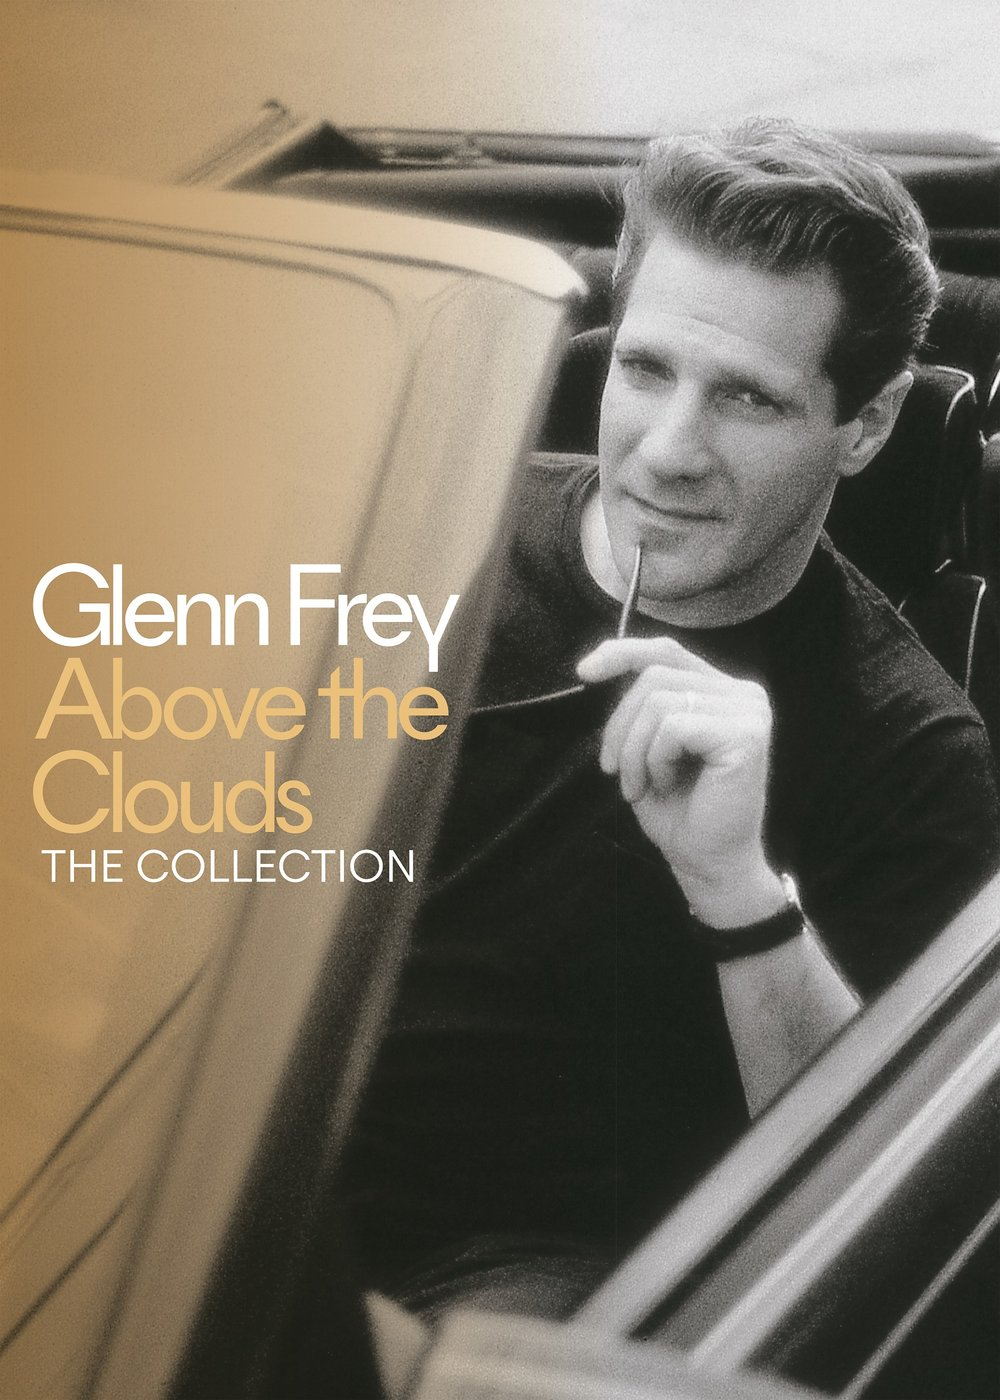 Glenn Frey Above The Clouds The Collection SML Cover Art (1).jpg